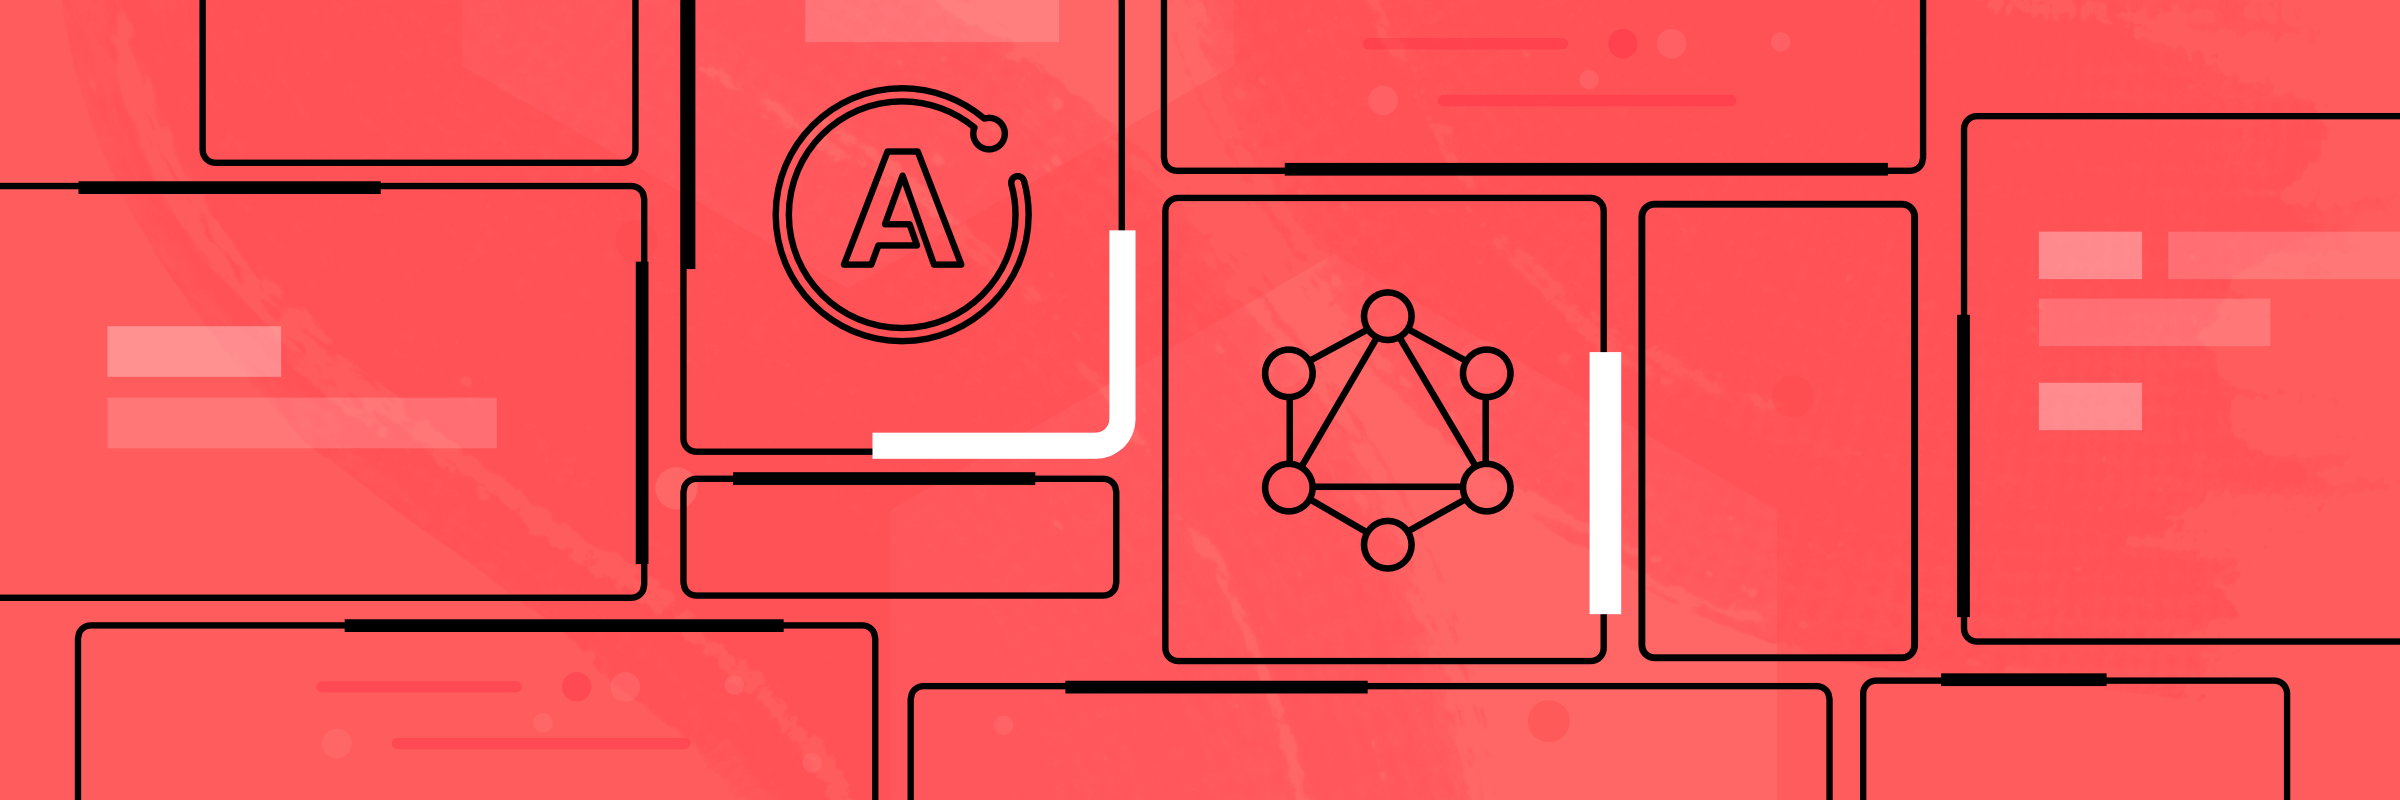 Introducing the Apollo GraphQL Platform for implementing the GraphQL Specification